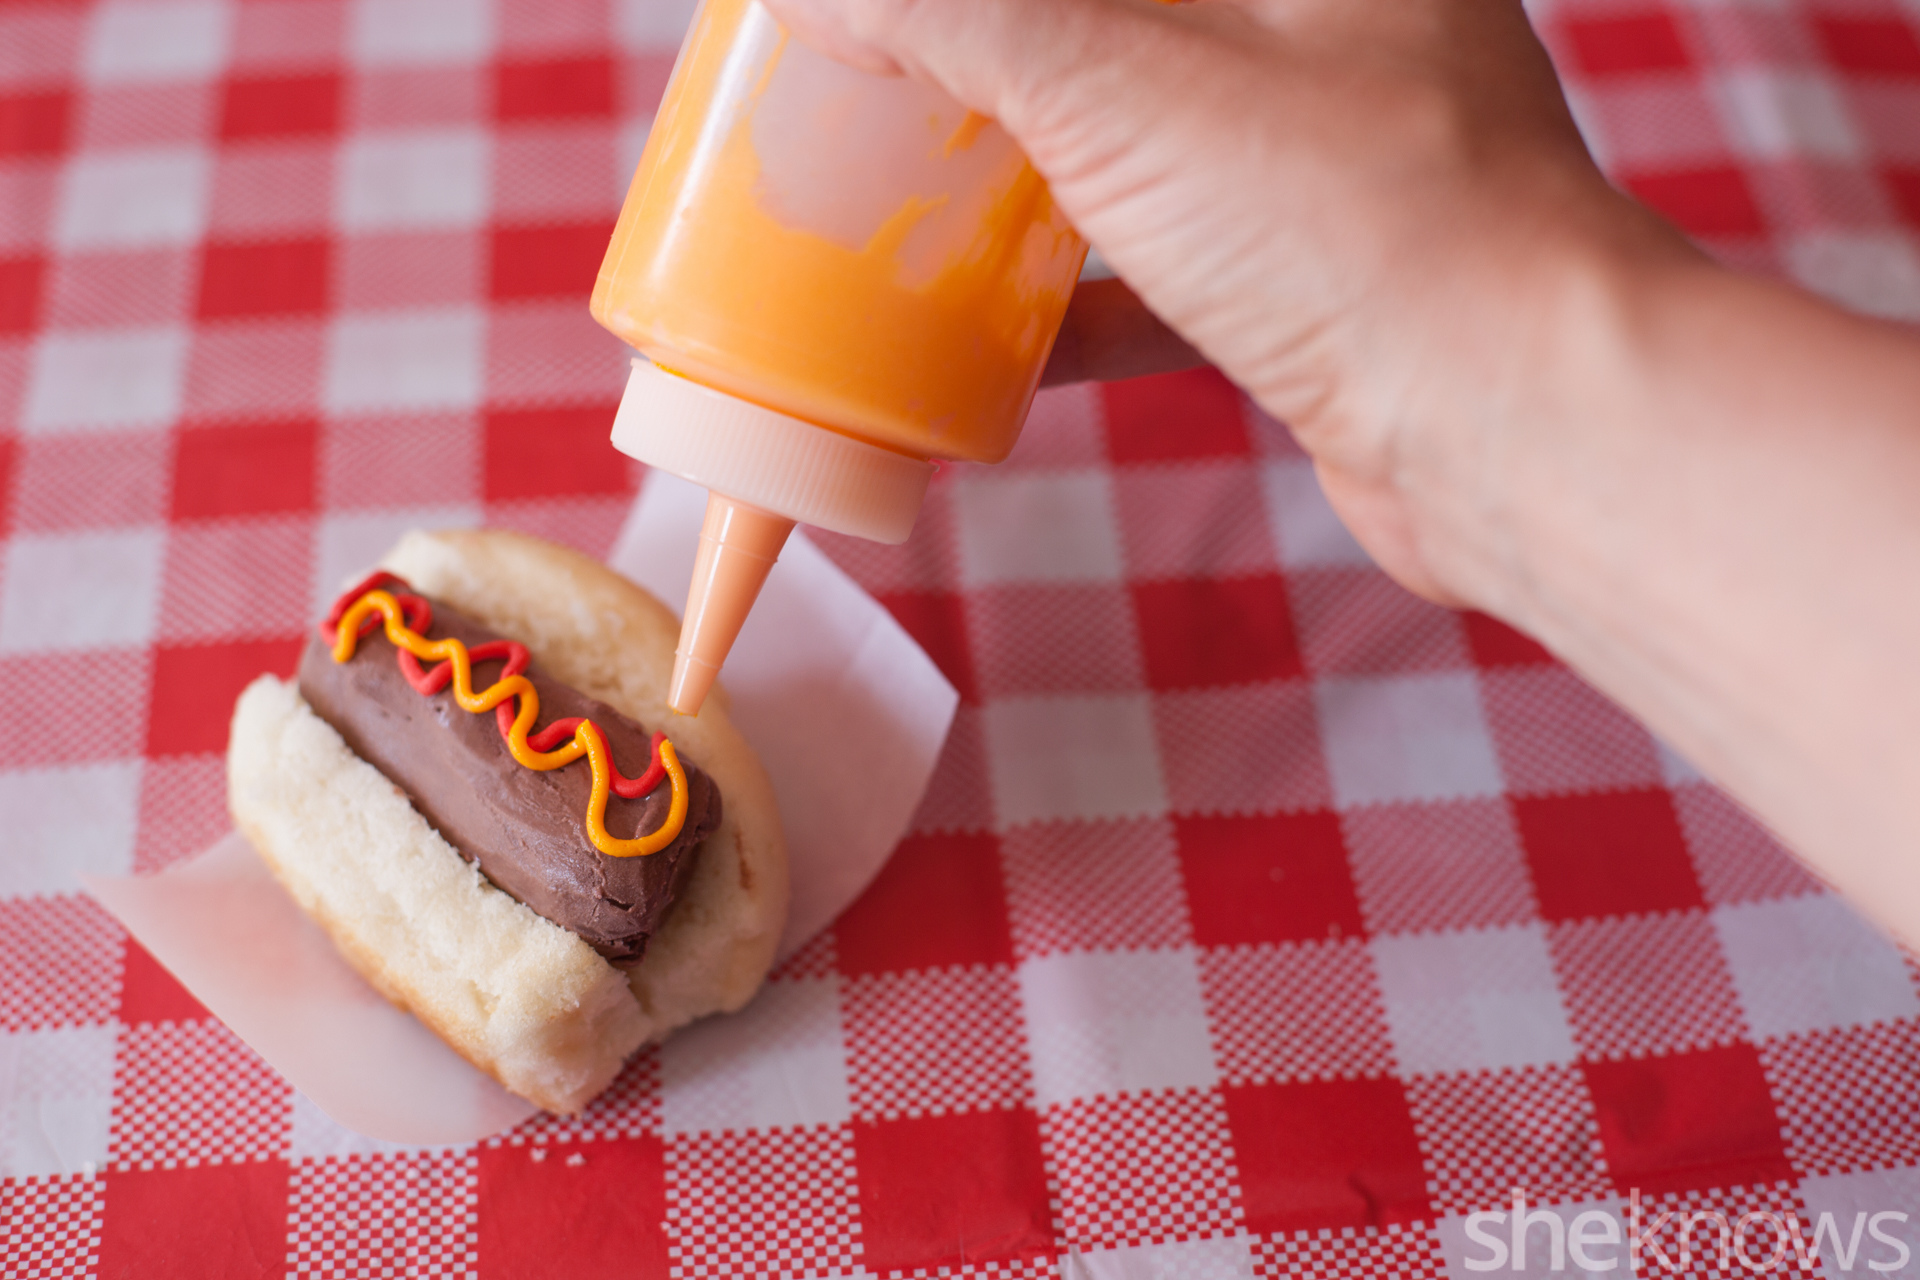 how to make cake ice cream hot dogs